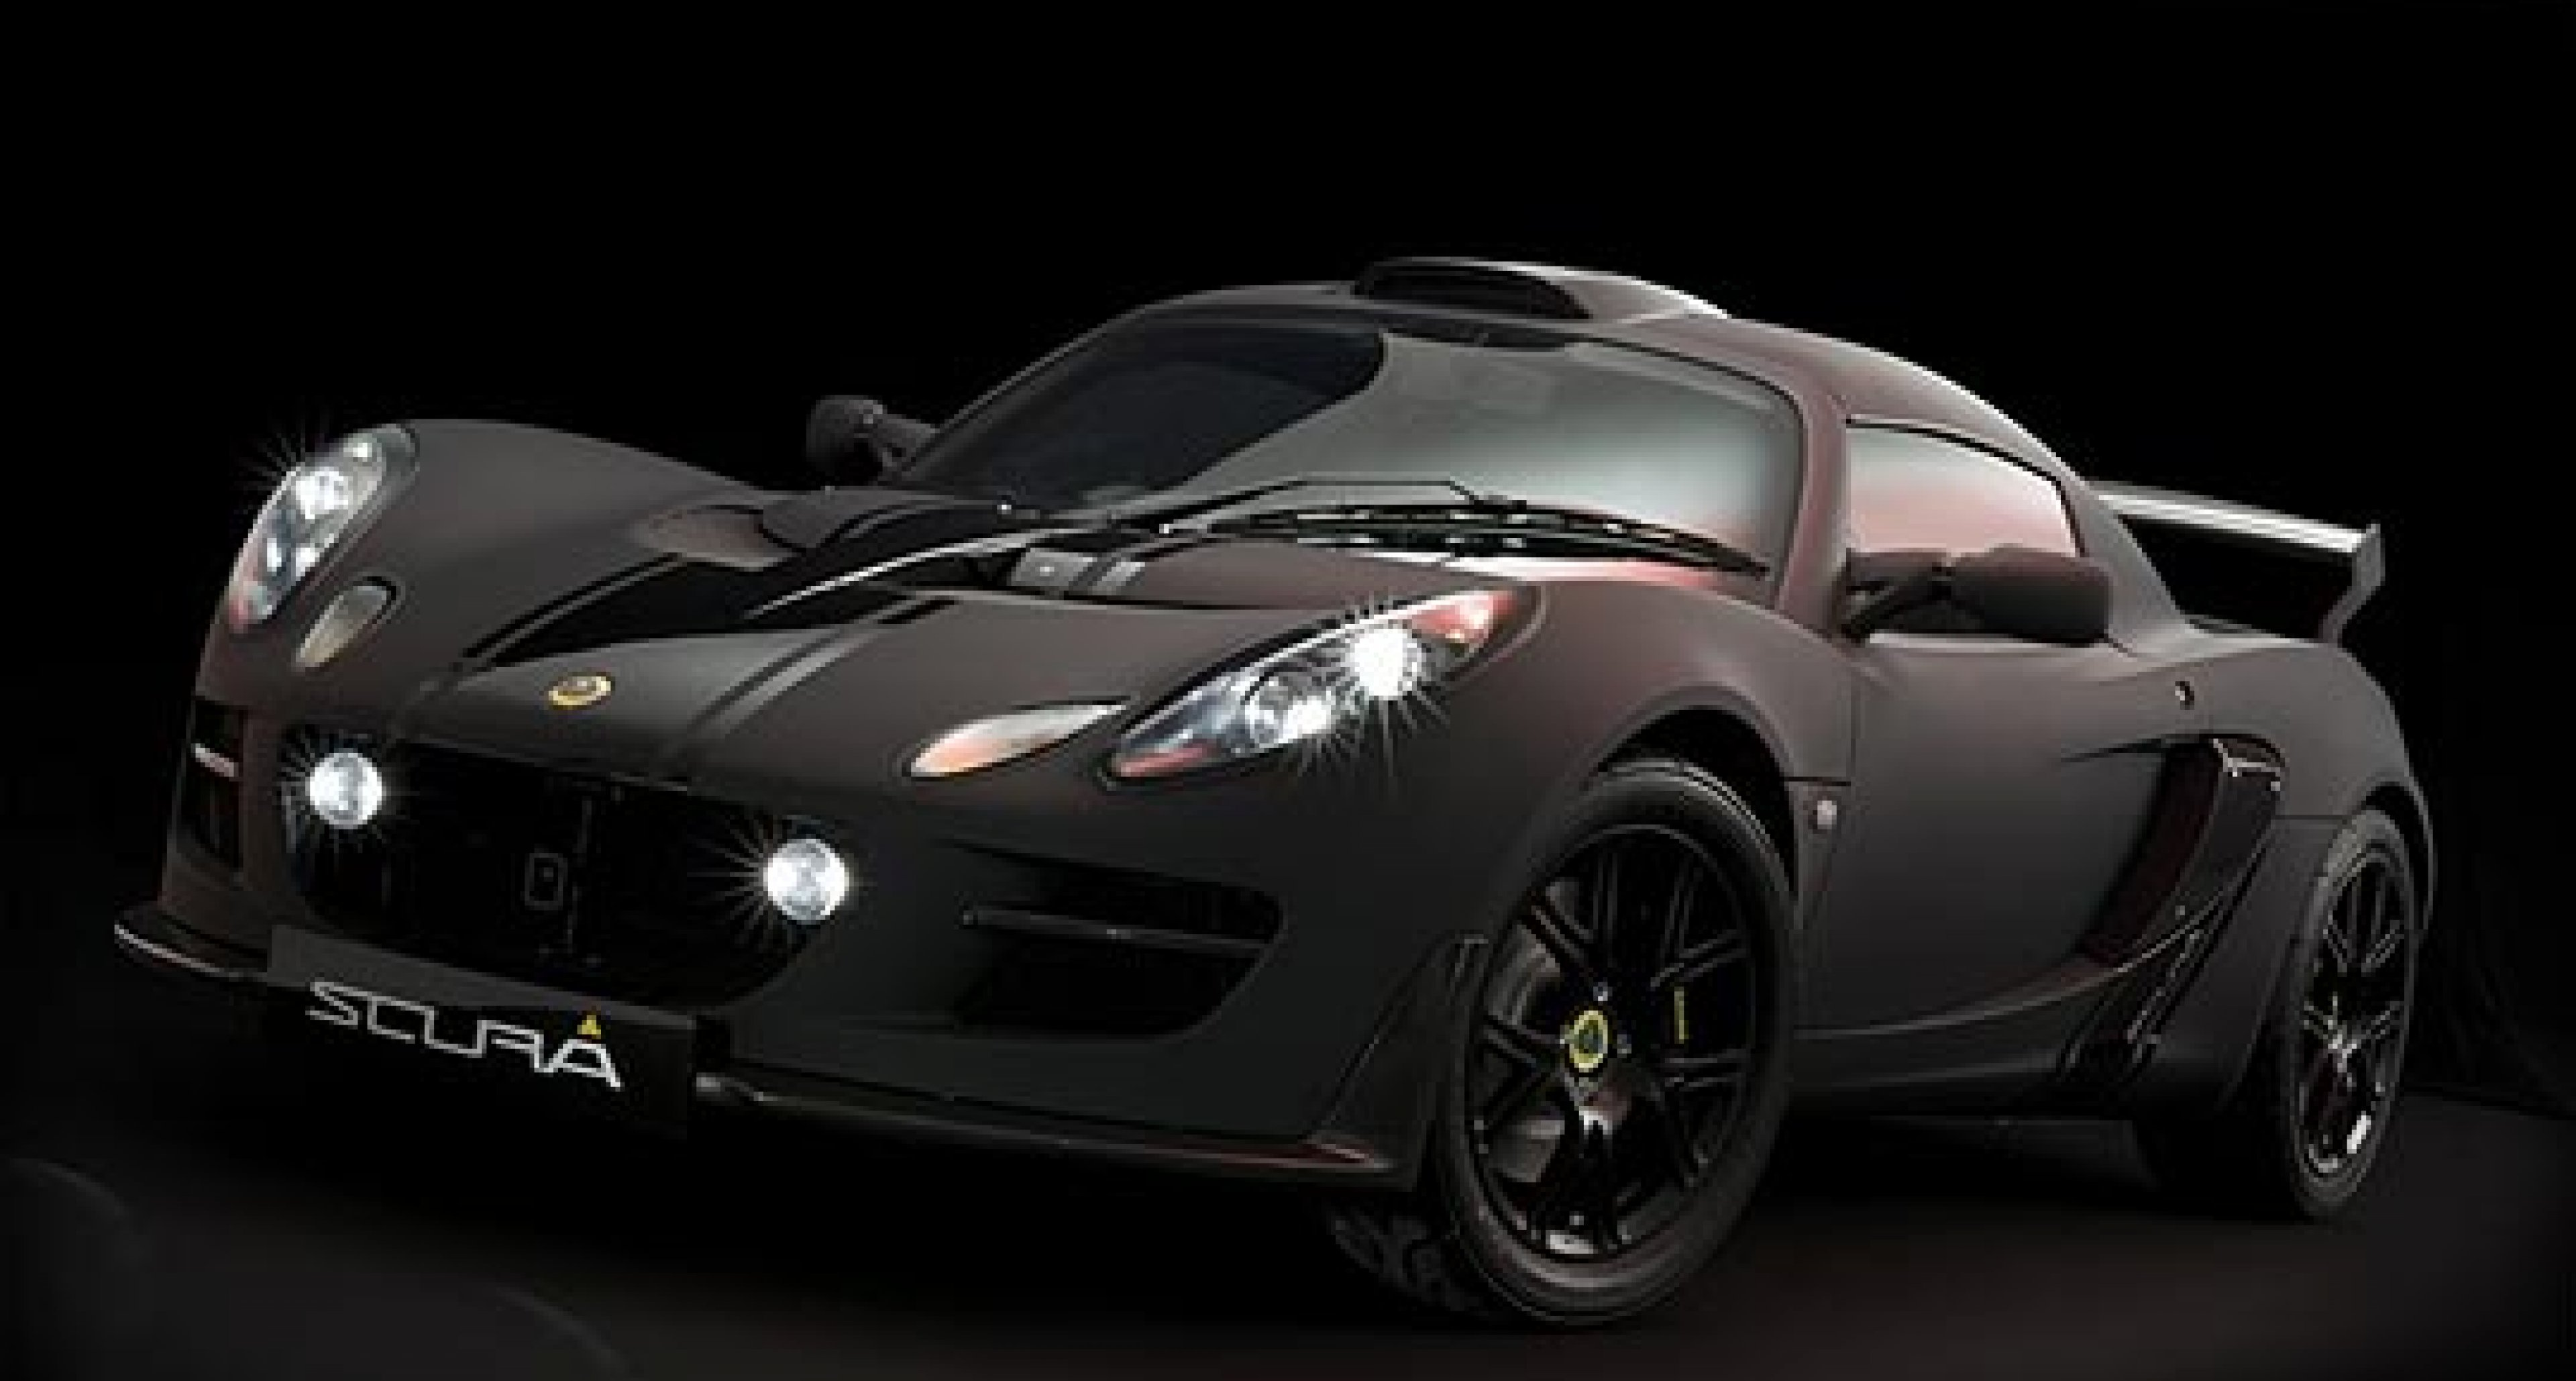 Exige Scura: the Dark Side of Lotus